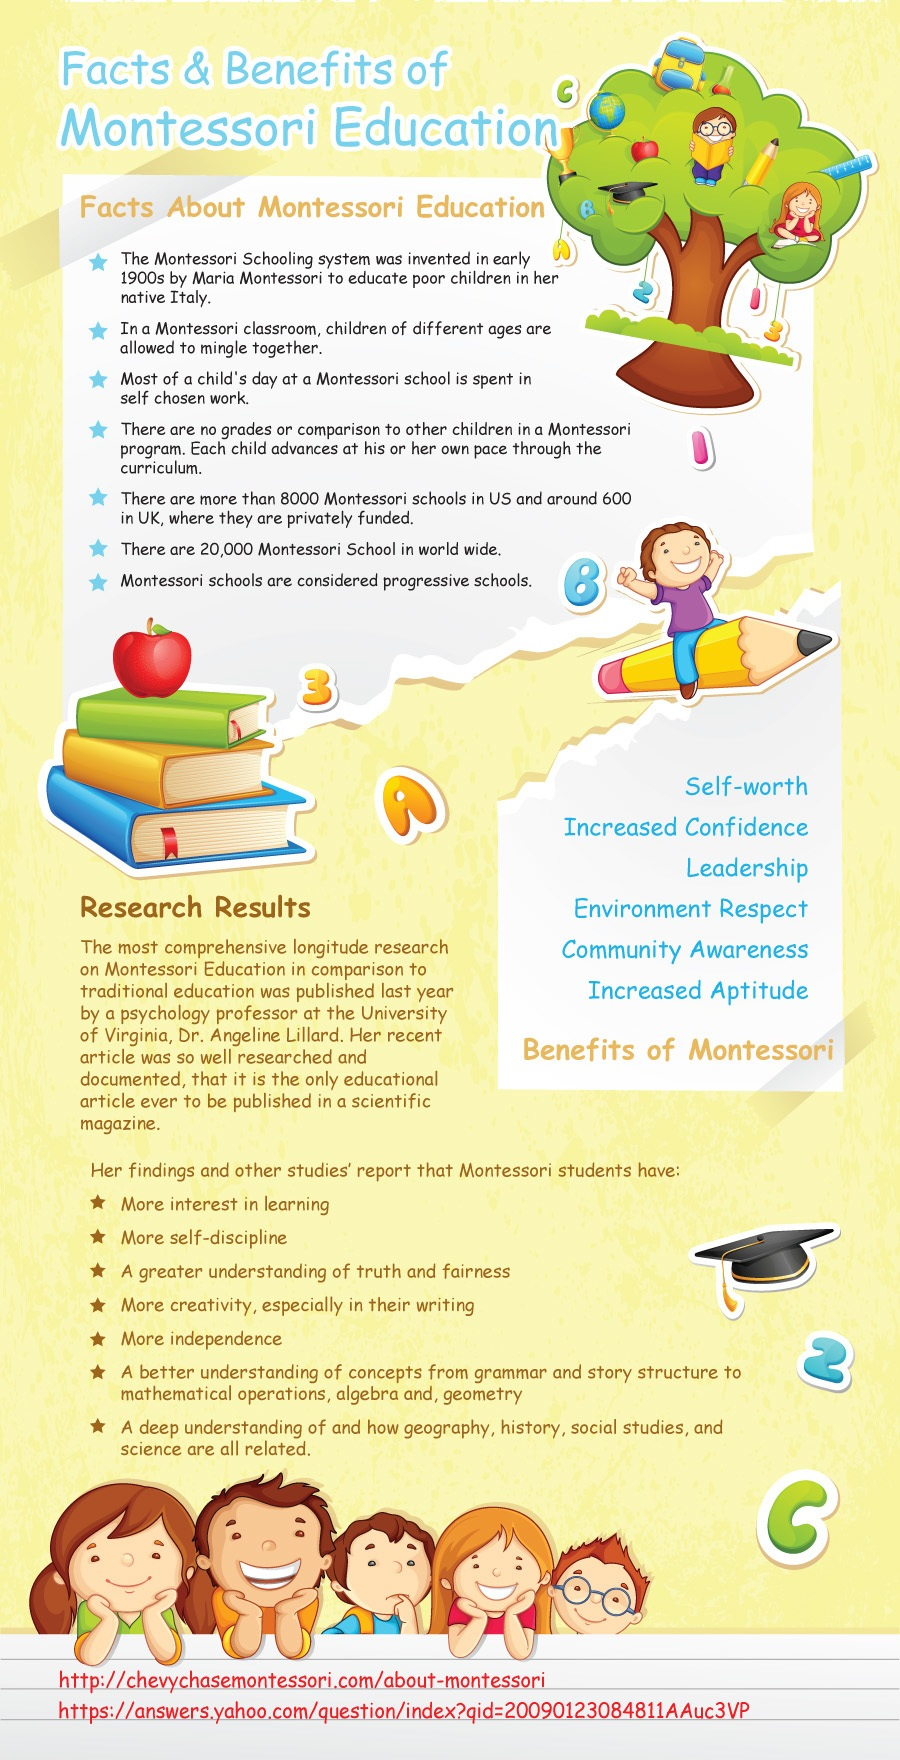 Facts and Benefits of Montessori Education Infographic